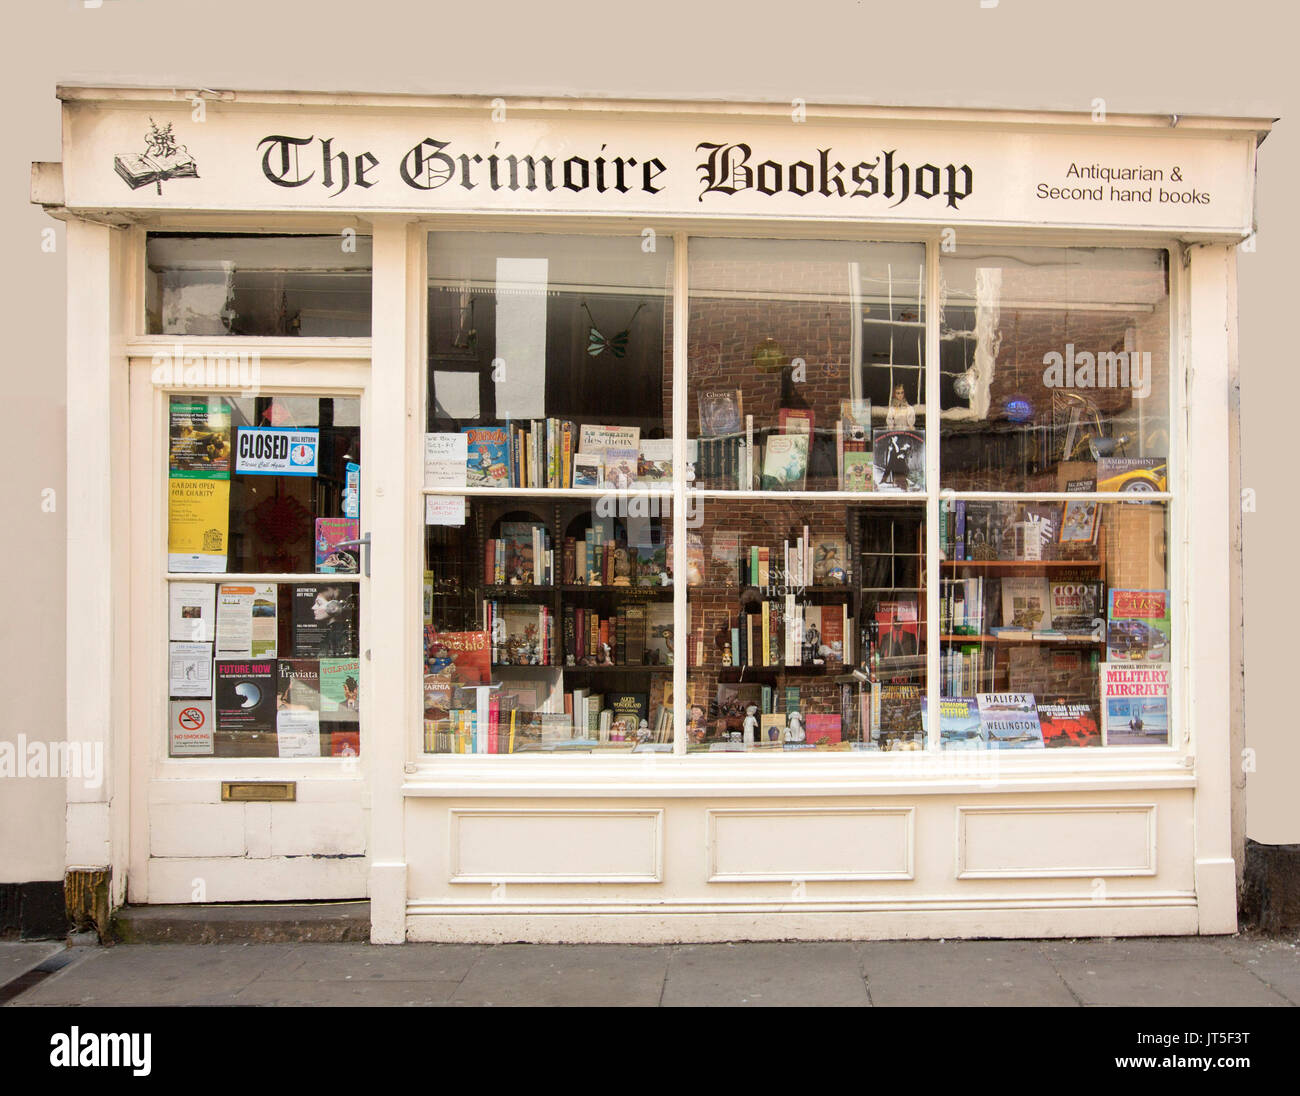 Second-hand bookshop, The Grimoire, neat cream painted facade with window of old building crammed with books, in historic city of York, England - Stock Image